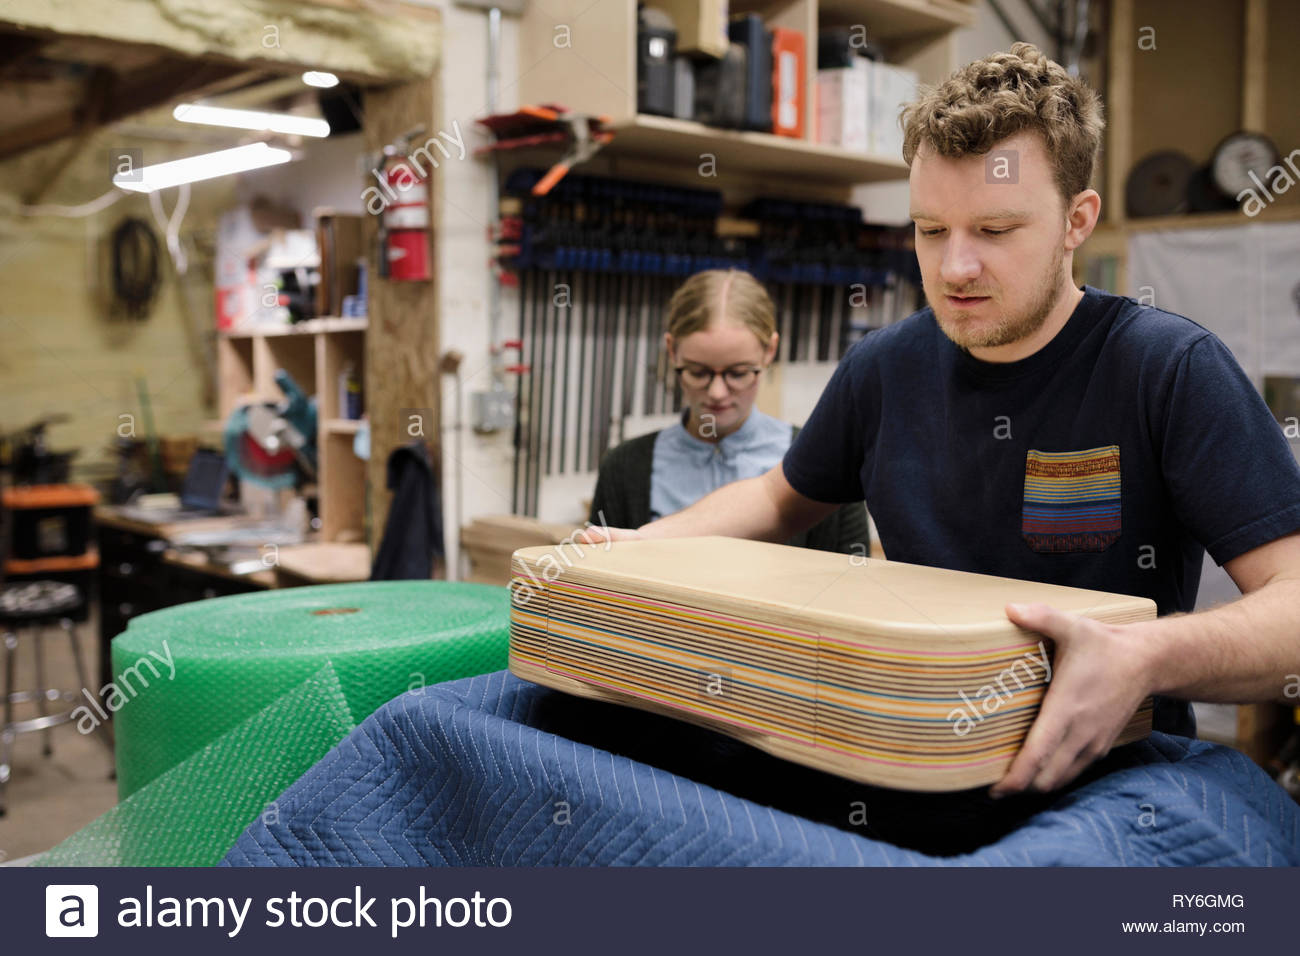 Male artist packaging product in workshop Stock Photo